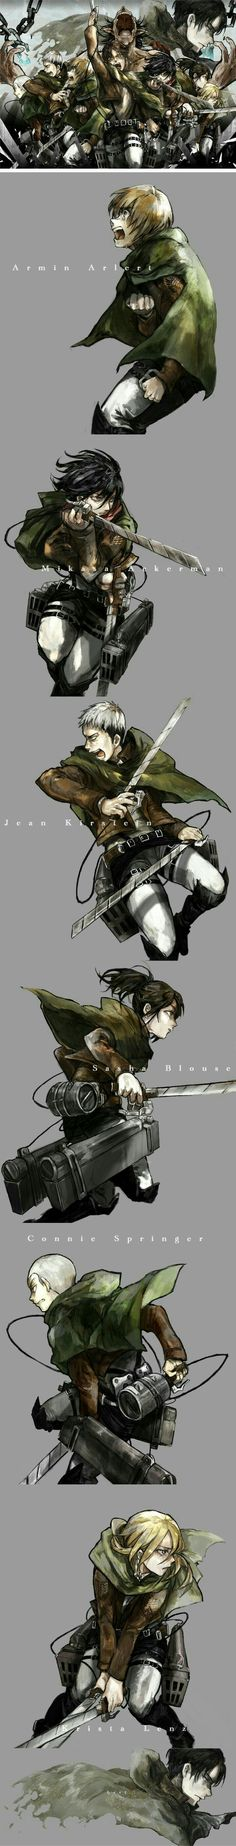 Attack on Titan characters, Armin, Mikasa, Jean, Sasha, Connie, Krista, Levi, text, sad, crying, Eren, Titan form, chains; Attack on Titan